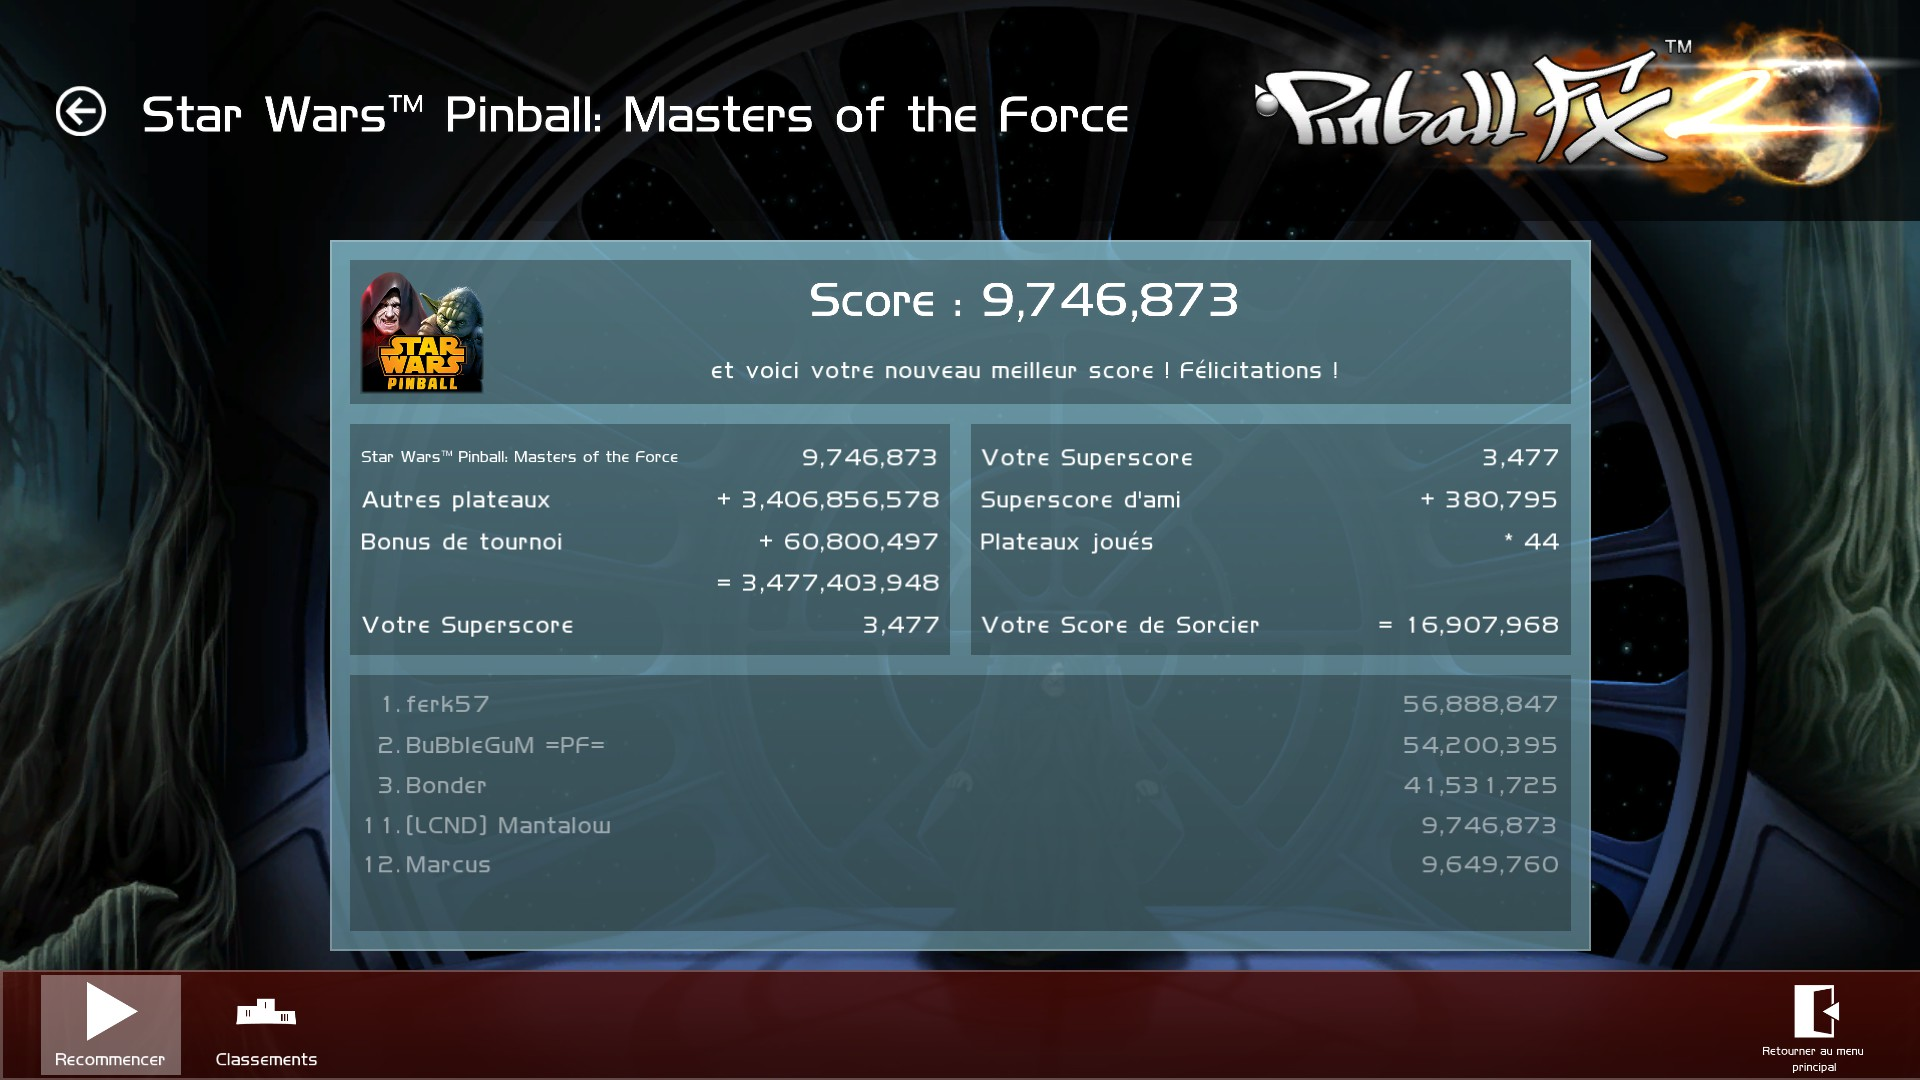 Mantalow: Pinball FX 2: Star Wars: Masters of the Force (PC) 9,746,873 points on 2015-03-05 09:58:43